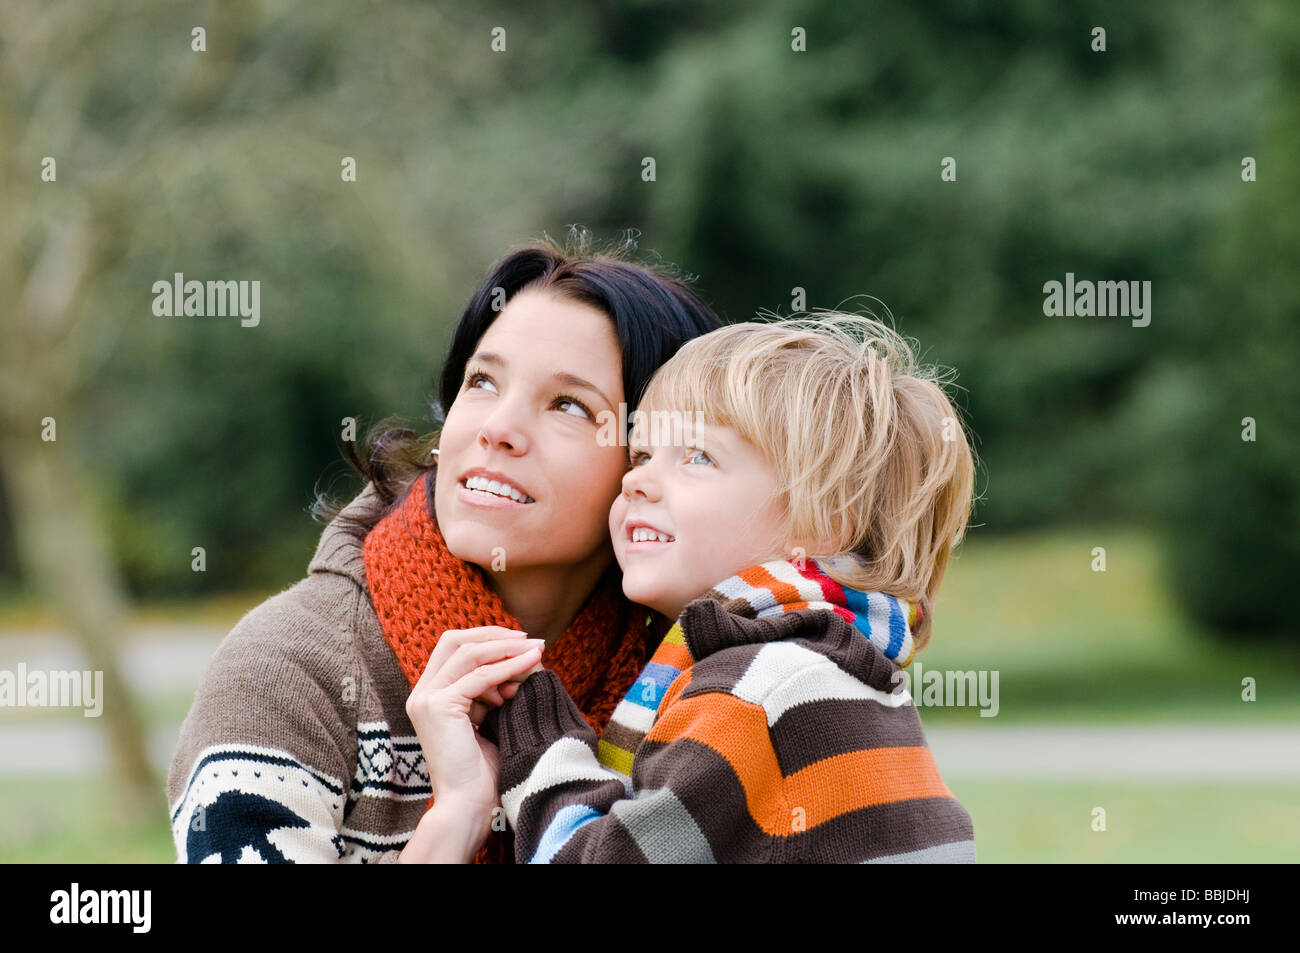 Young woman and boy looking upward, Vancouver, British Columbia - Stock Image